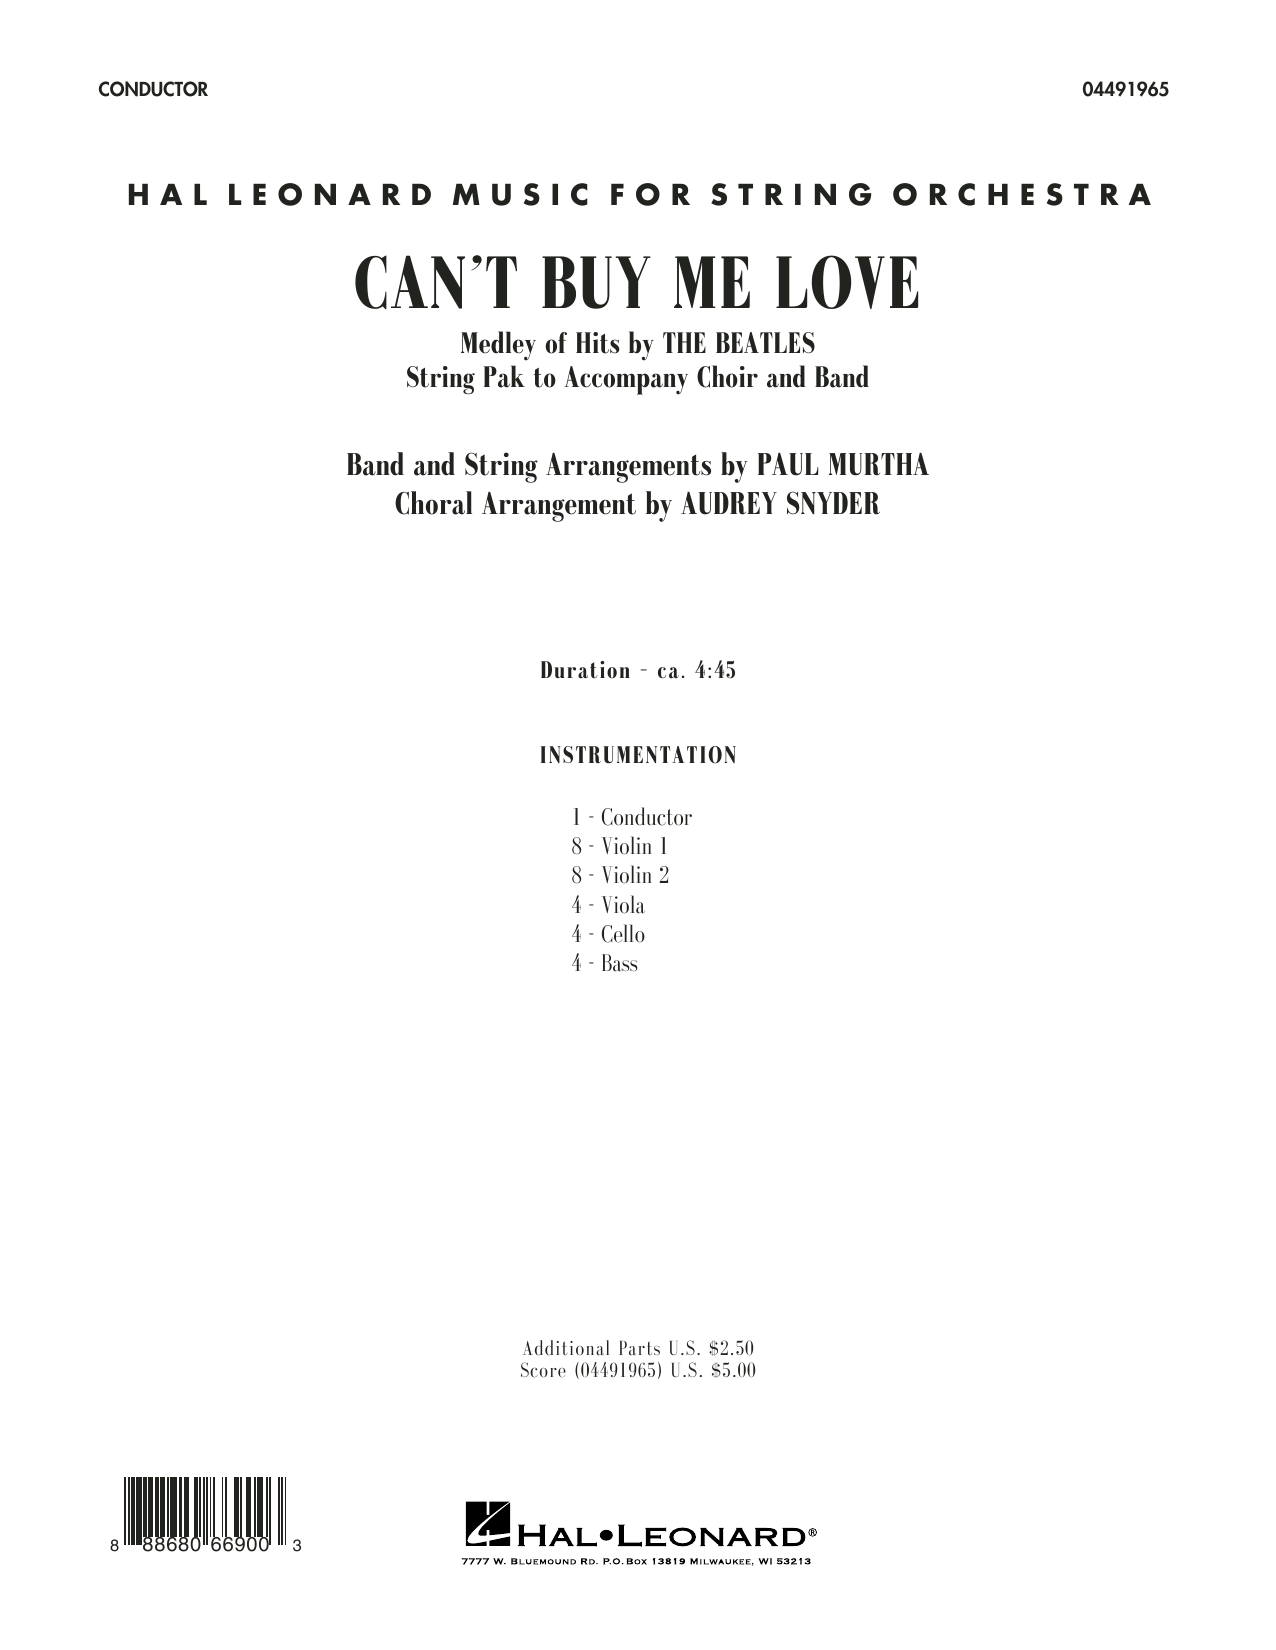 Can't Buy Me Love - Conductor Score (Full Score) Sheet Music